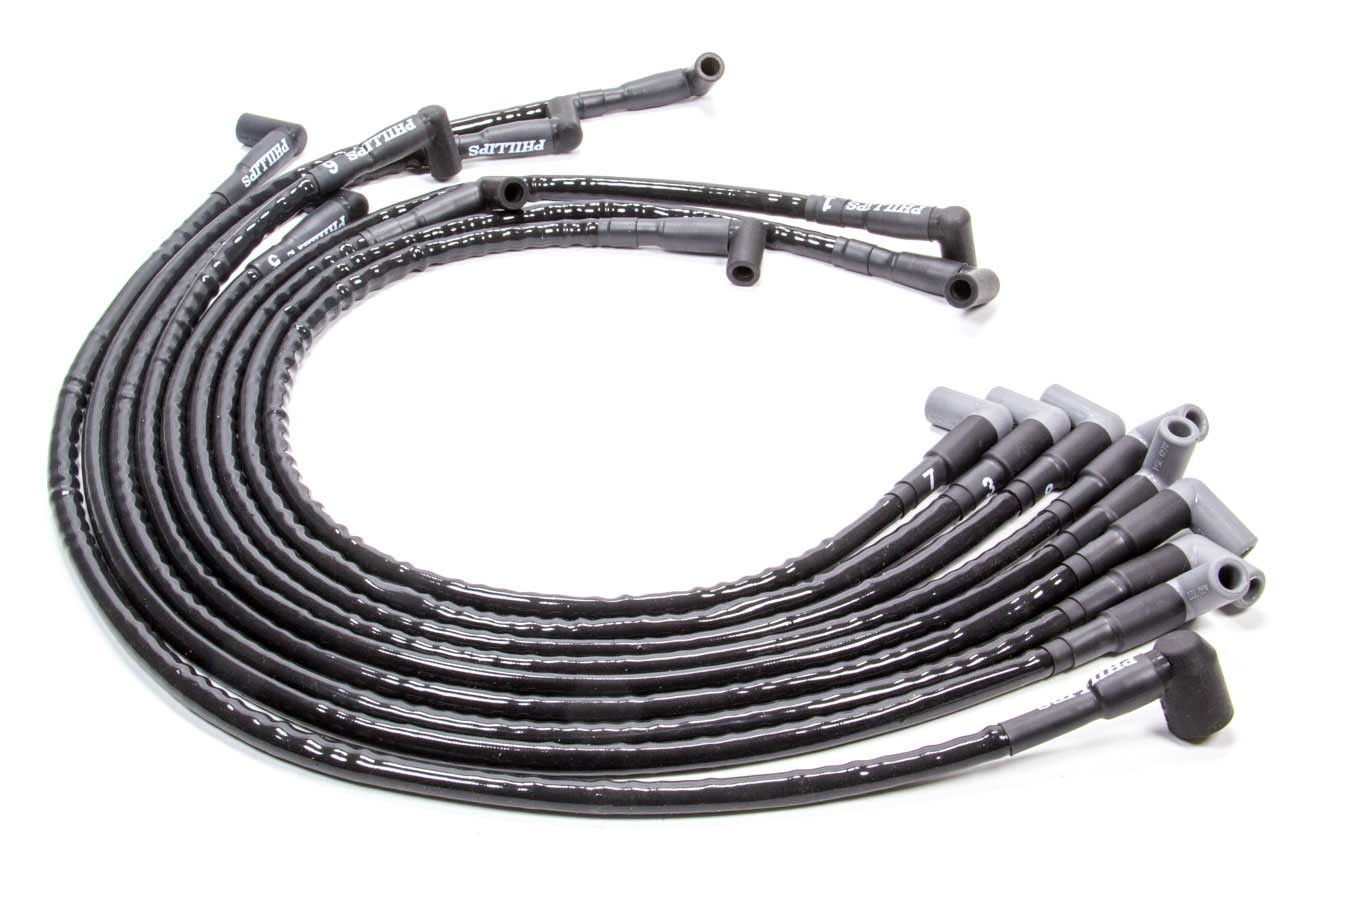 Woody Wires S817 Spark Plug Wire Set, Woody Wires, Spiral Core, 8 mm, Sleeved, Black, 90 Degree Boots, HEI Style Terminal, Around Back, Small Block Chevy, Kit